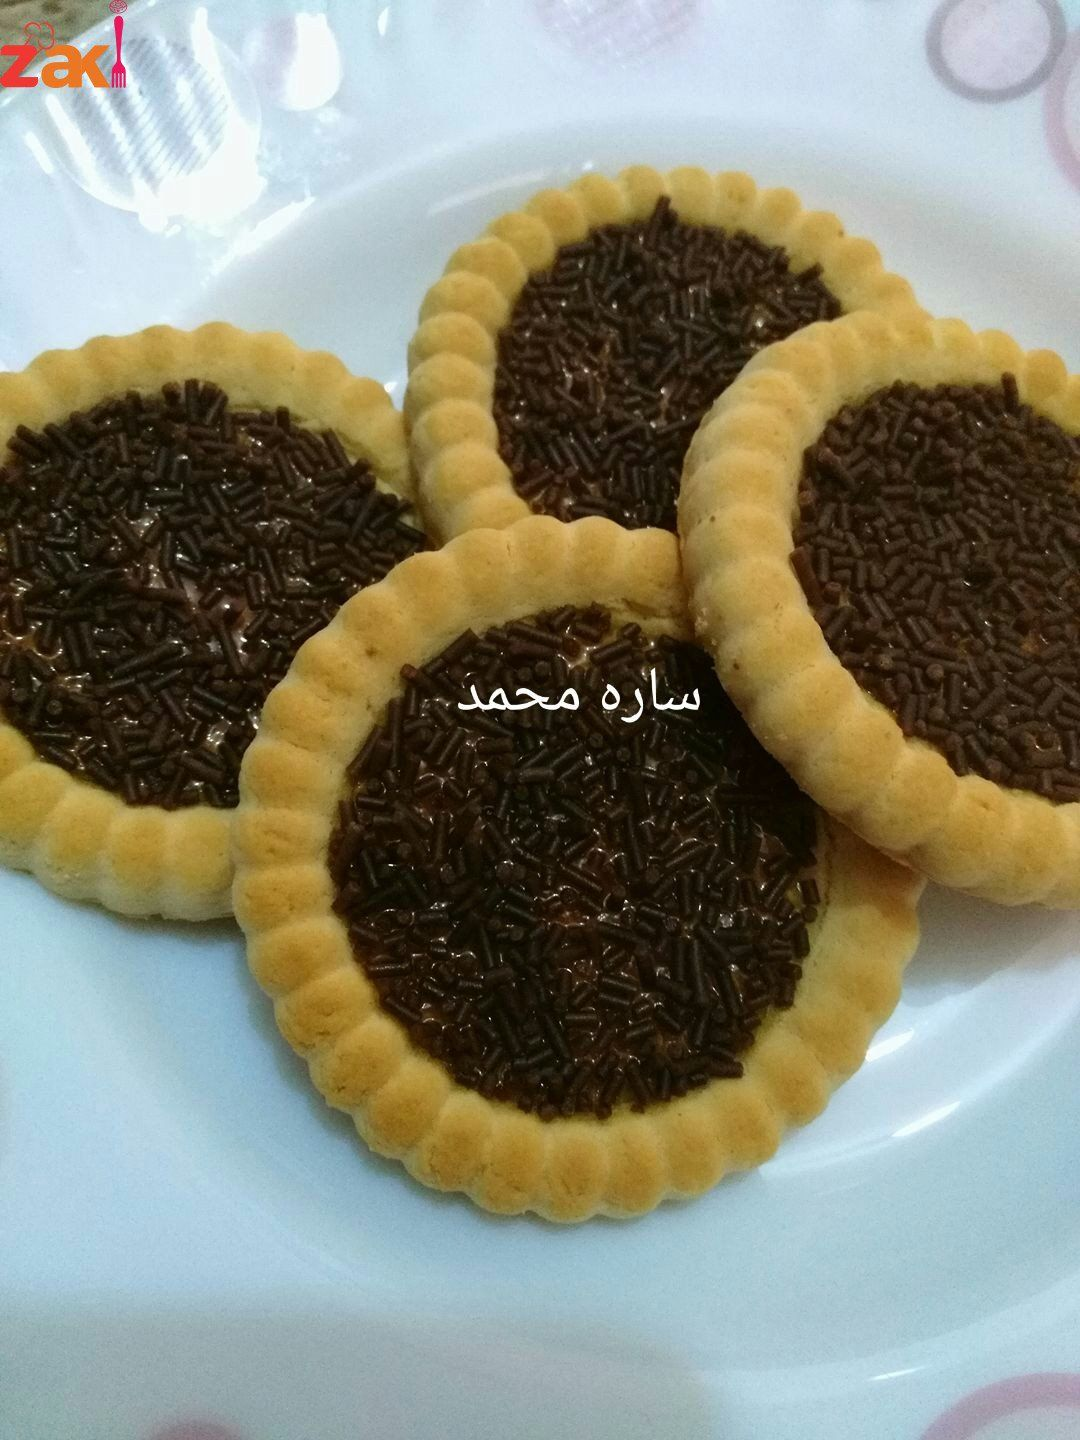 Pin By سوسن حجازية On اكلات لذيذة Cookout Food Morrocan Food Food Receipes